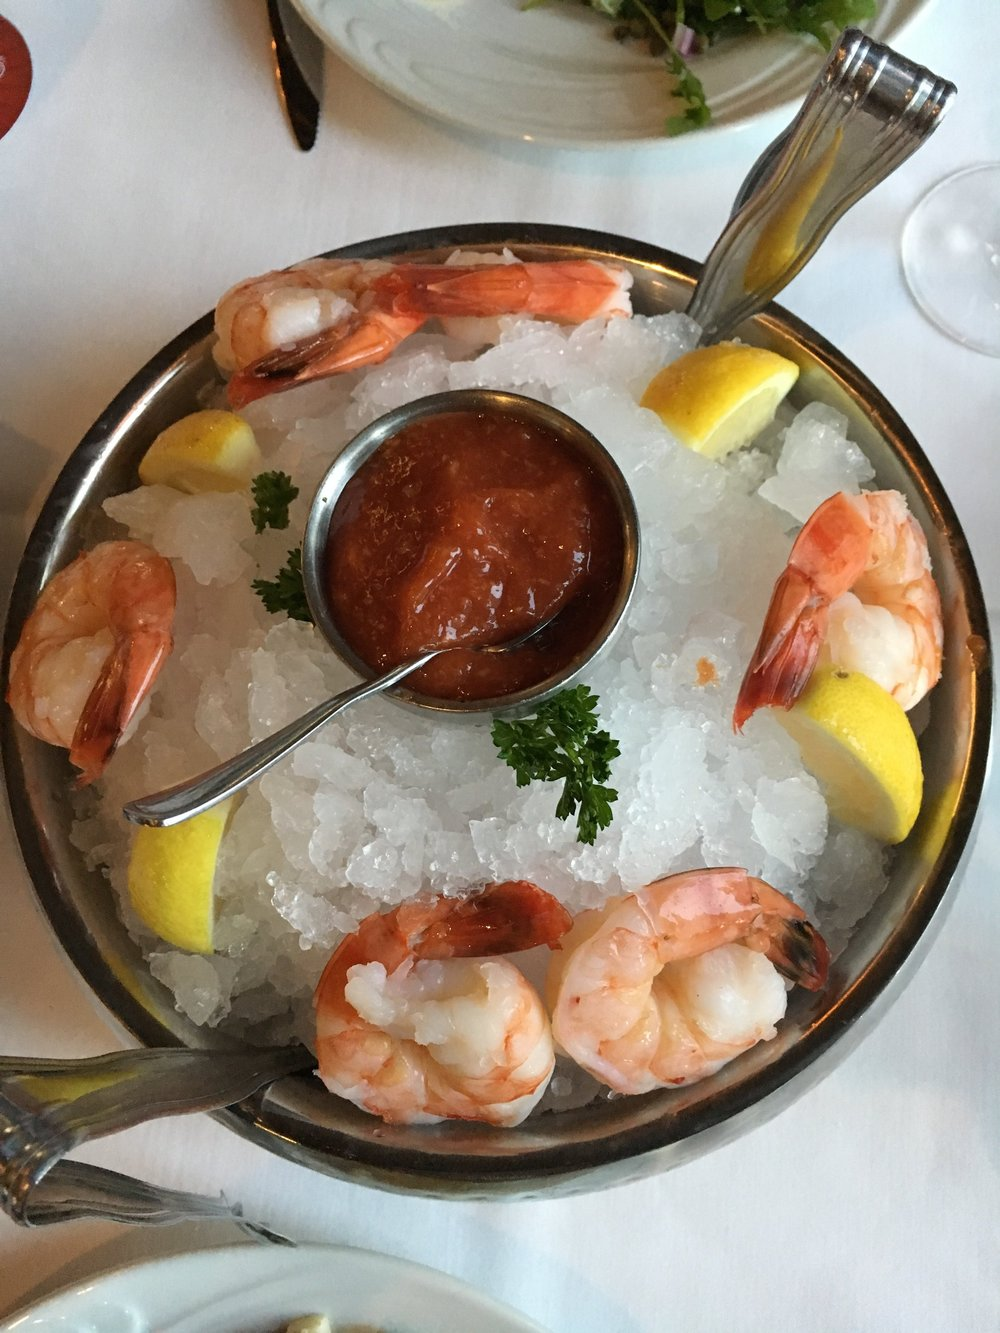 Starting off easy with shrimp cocktail!